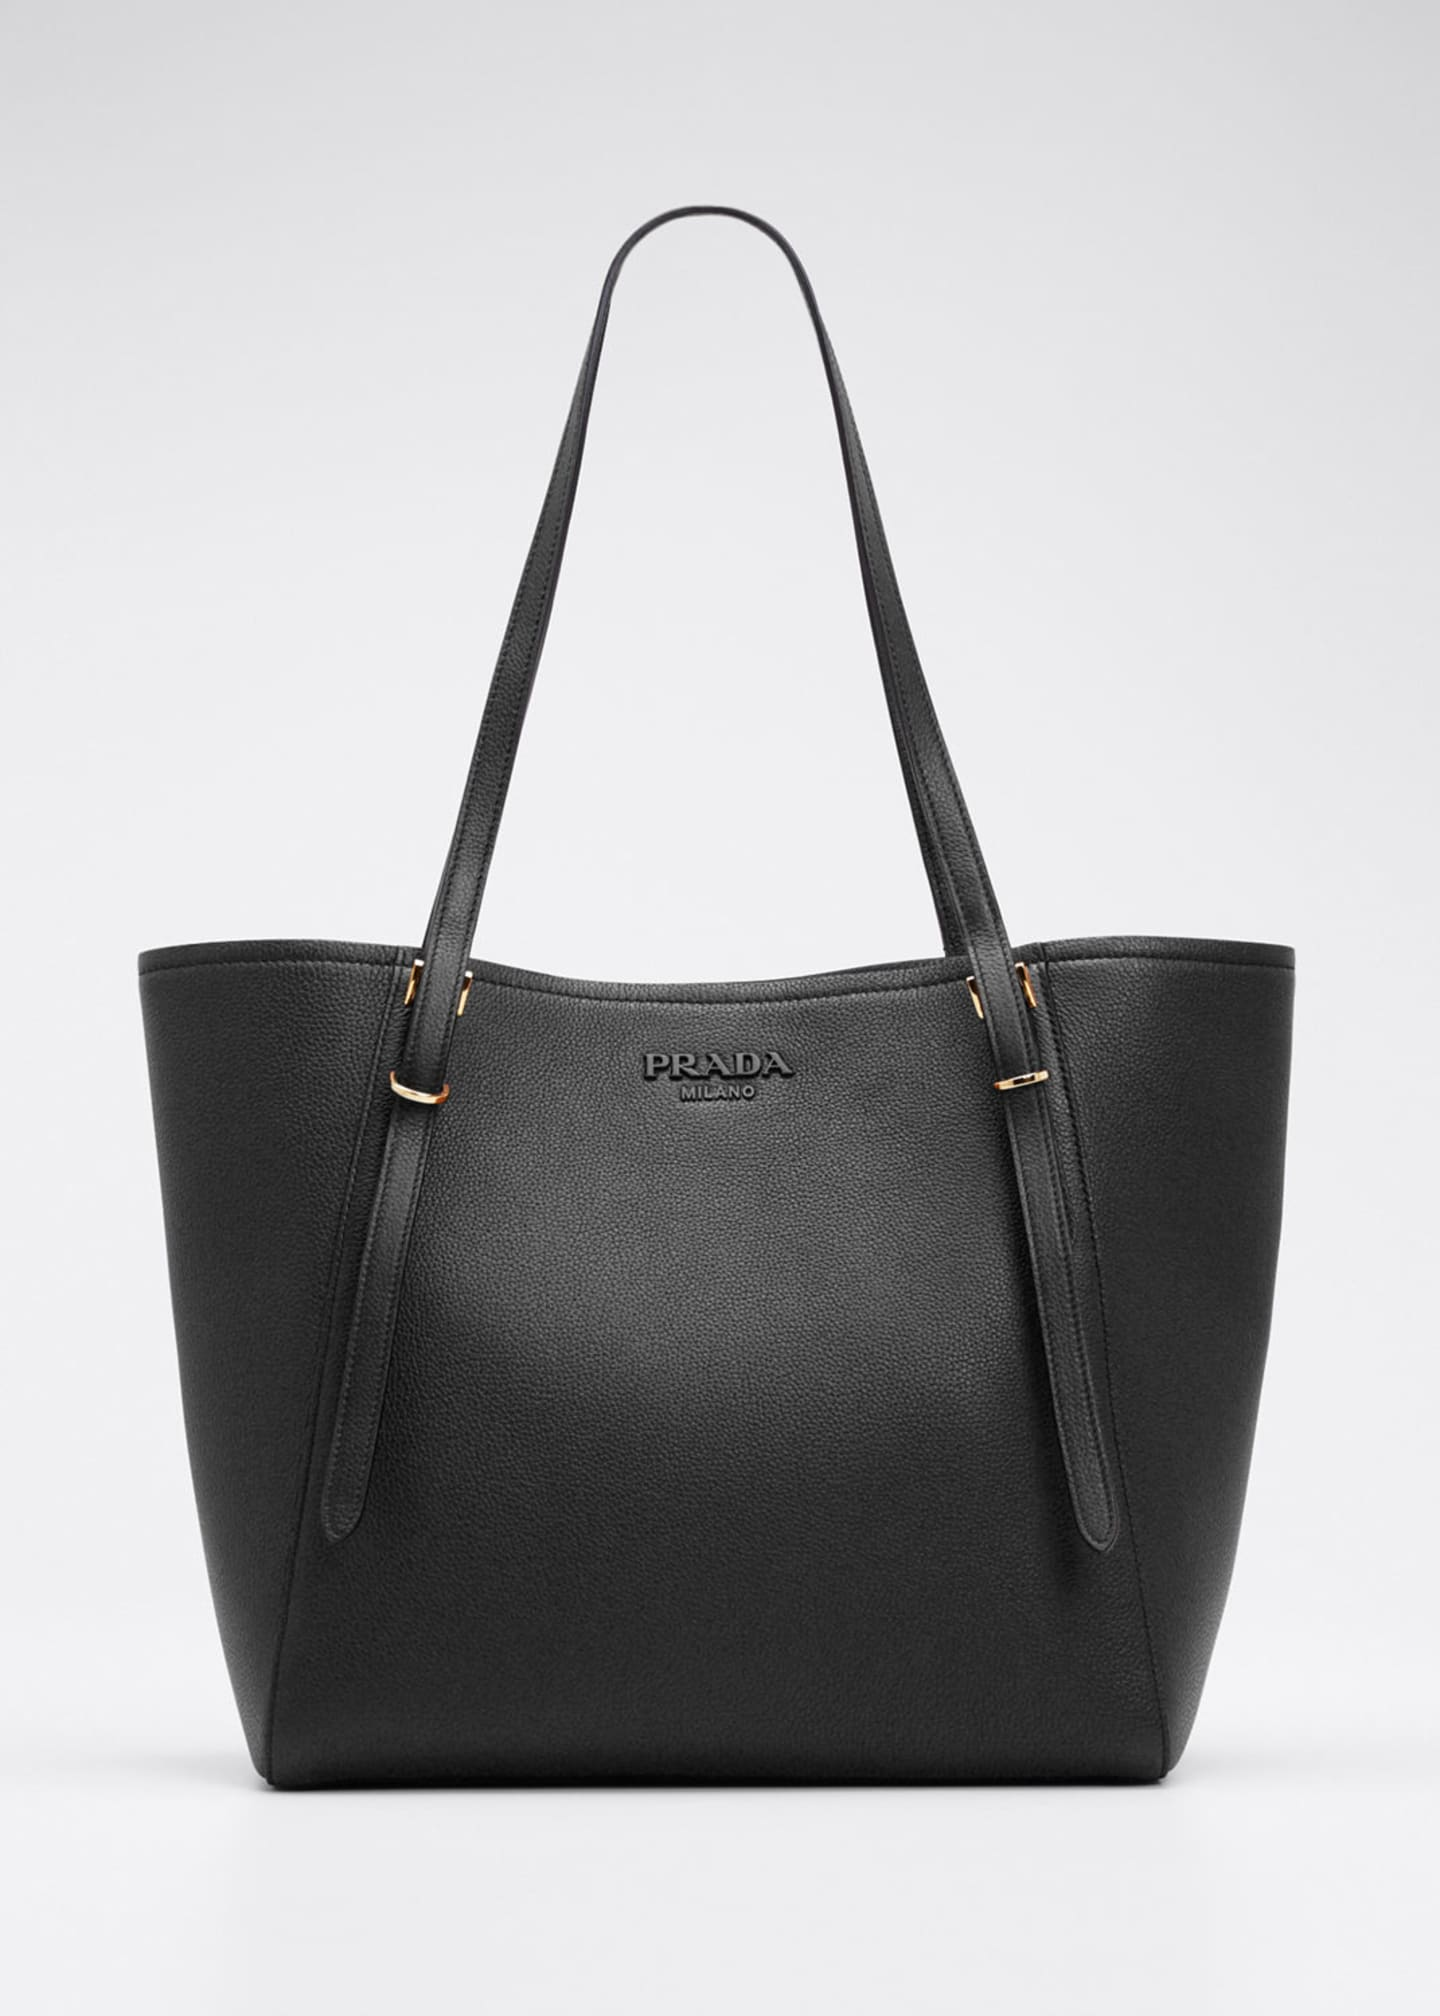 Prada Leather Shopper Tote Bag